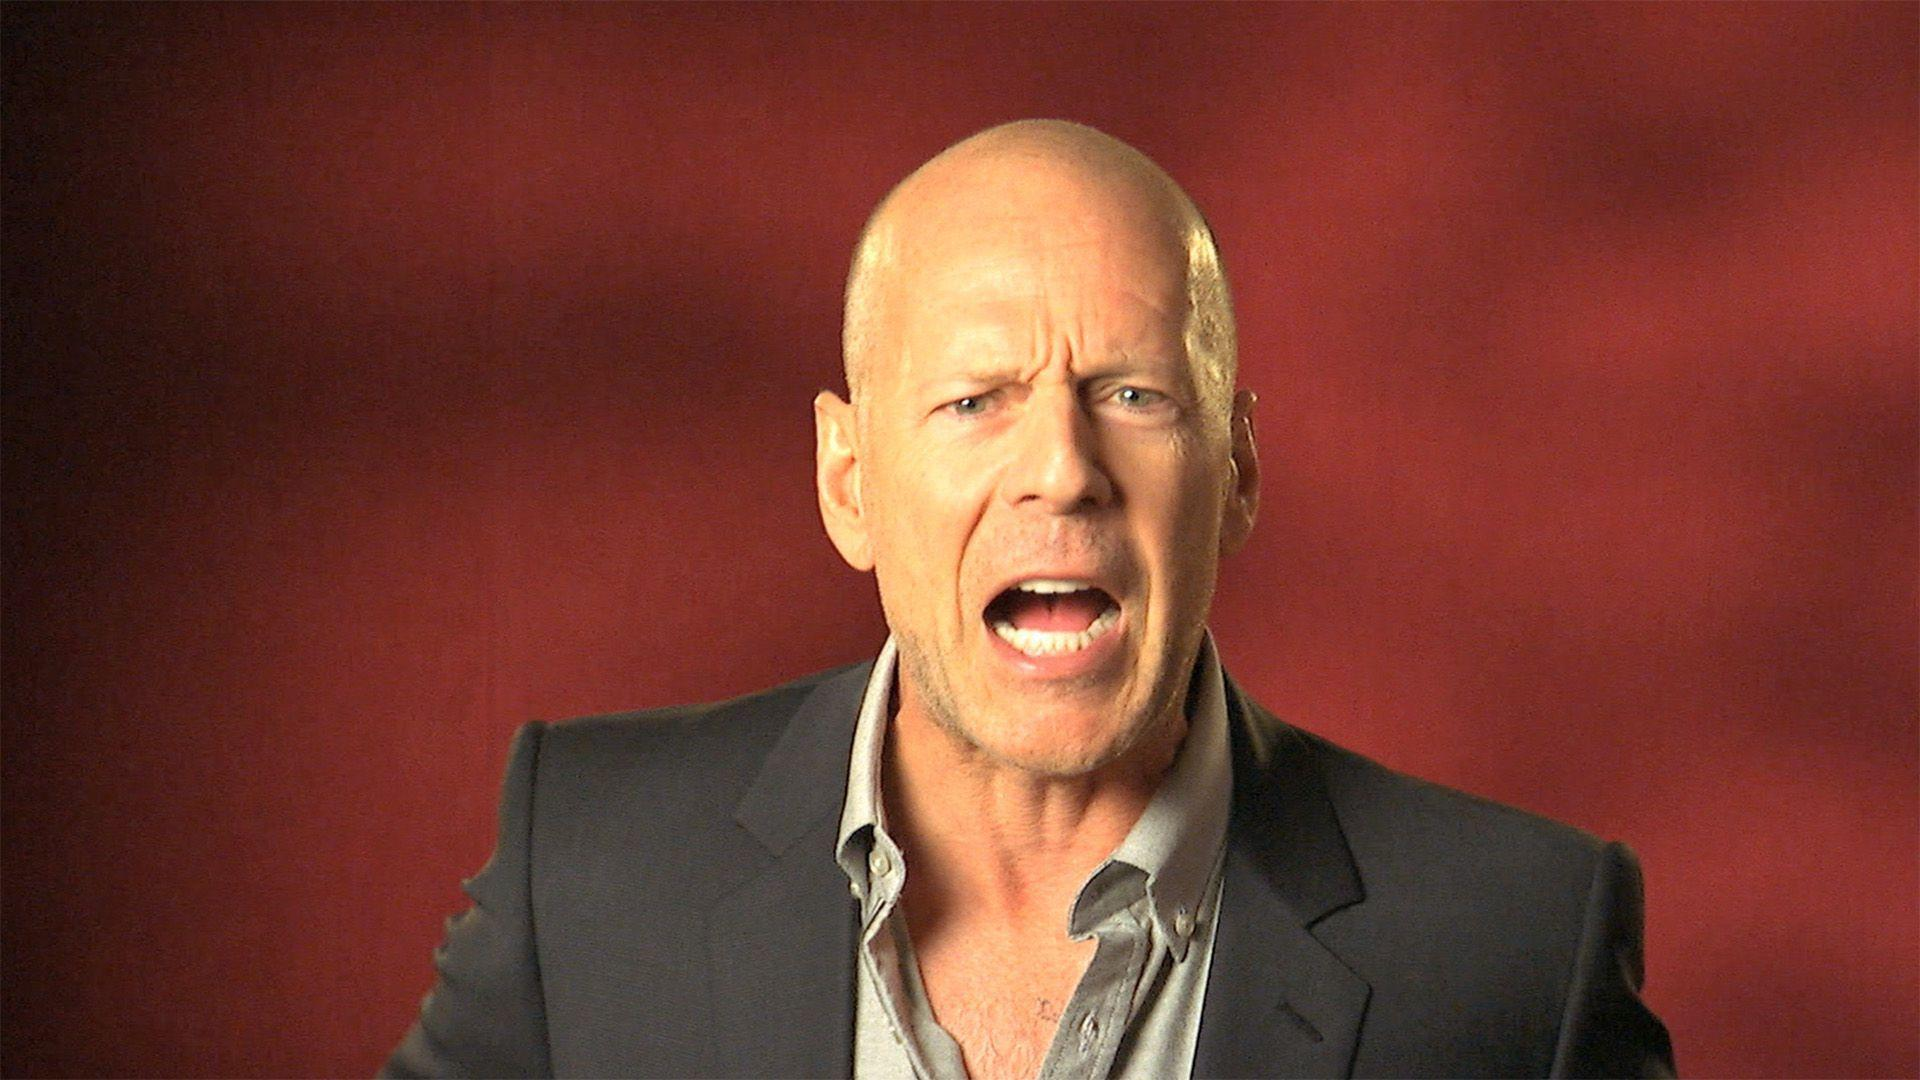 Bruce Willis Wallpapers Unique Style - Wallpaper Flix